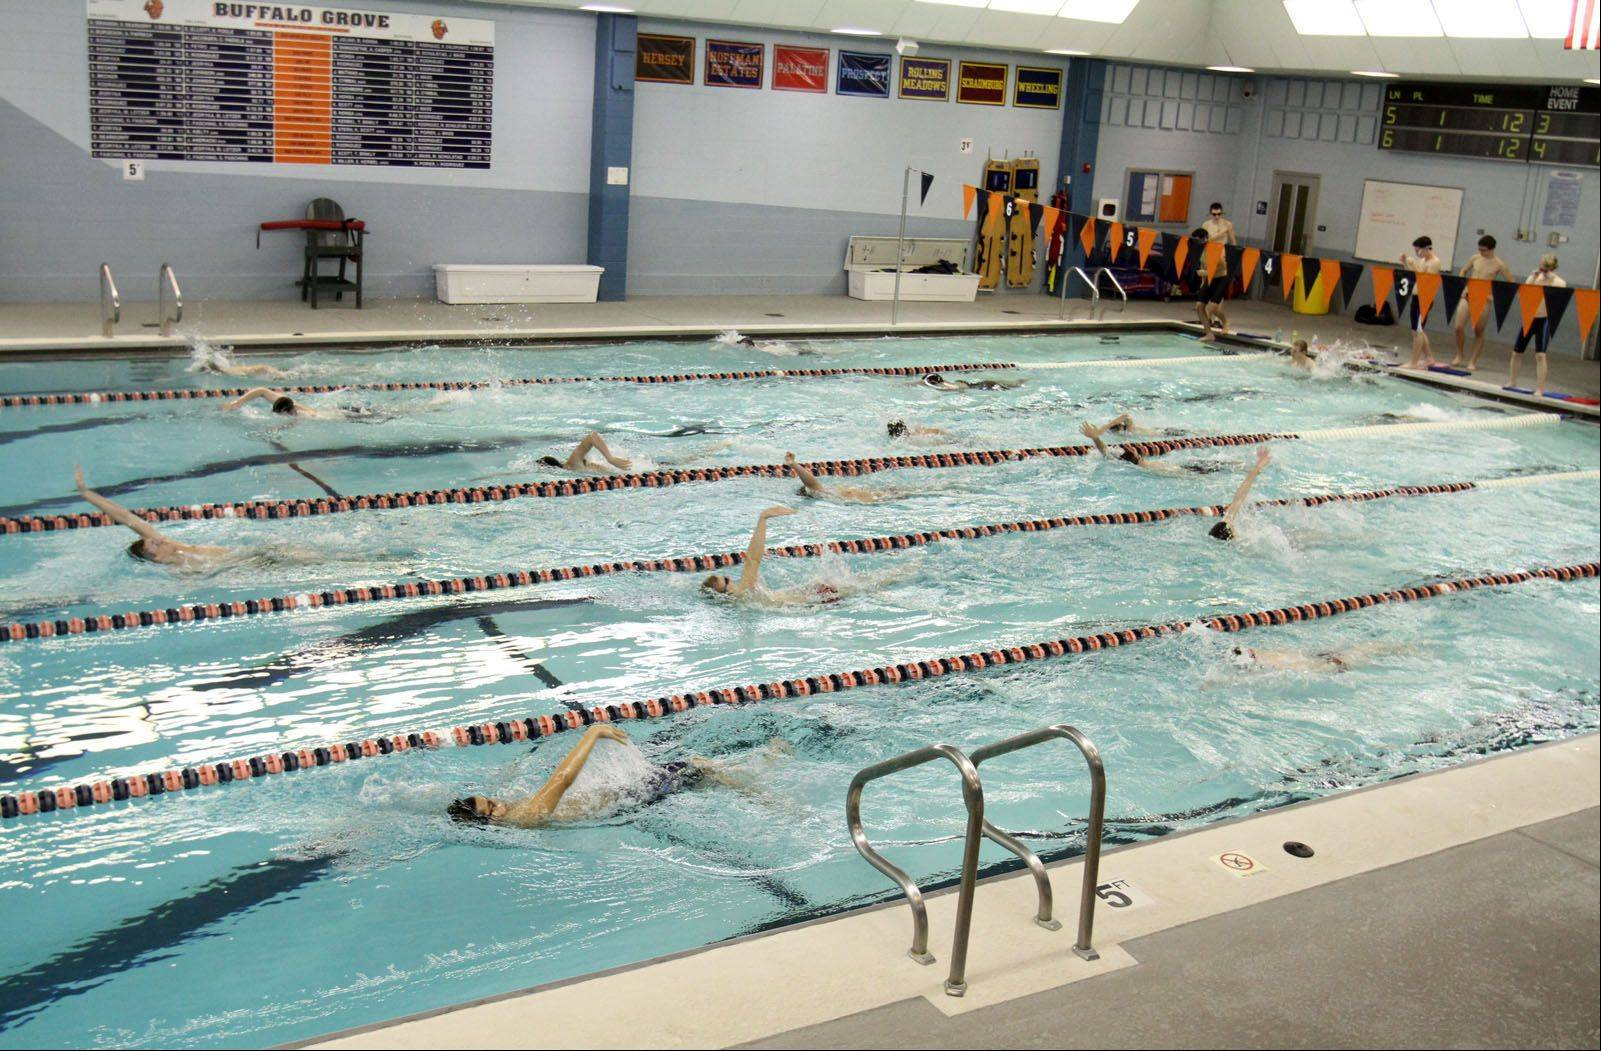 Buffalo Grove High School's boys swimming team practices at the school's pool Wednesday. Renovations this summer will create a deeper diving well, which is required by code, and expand the pool from six to eight lanes.